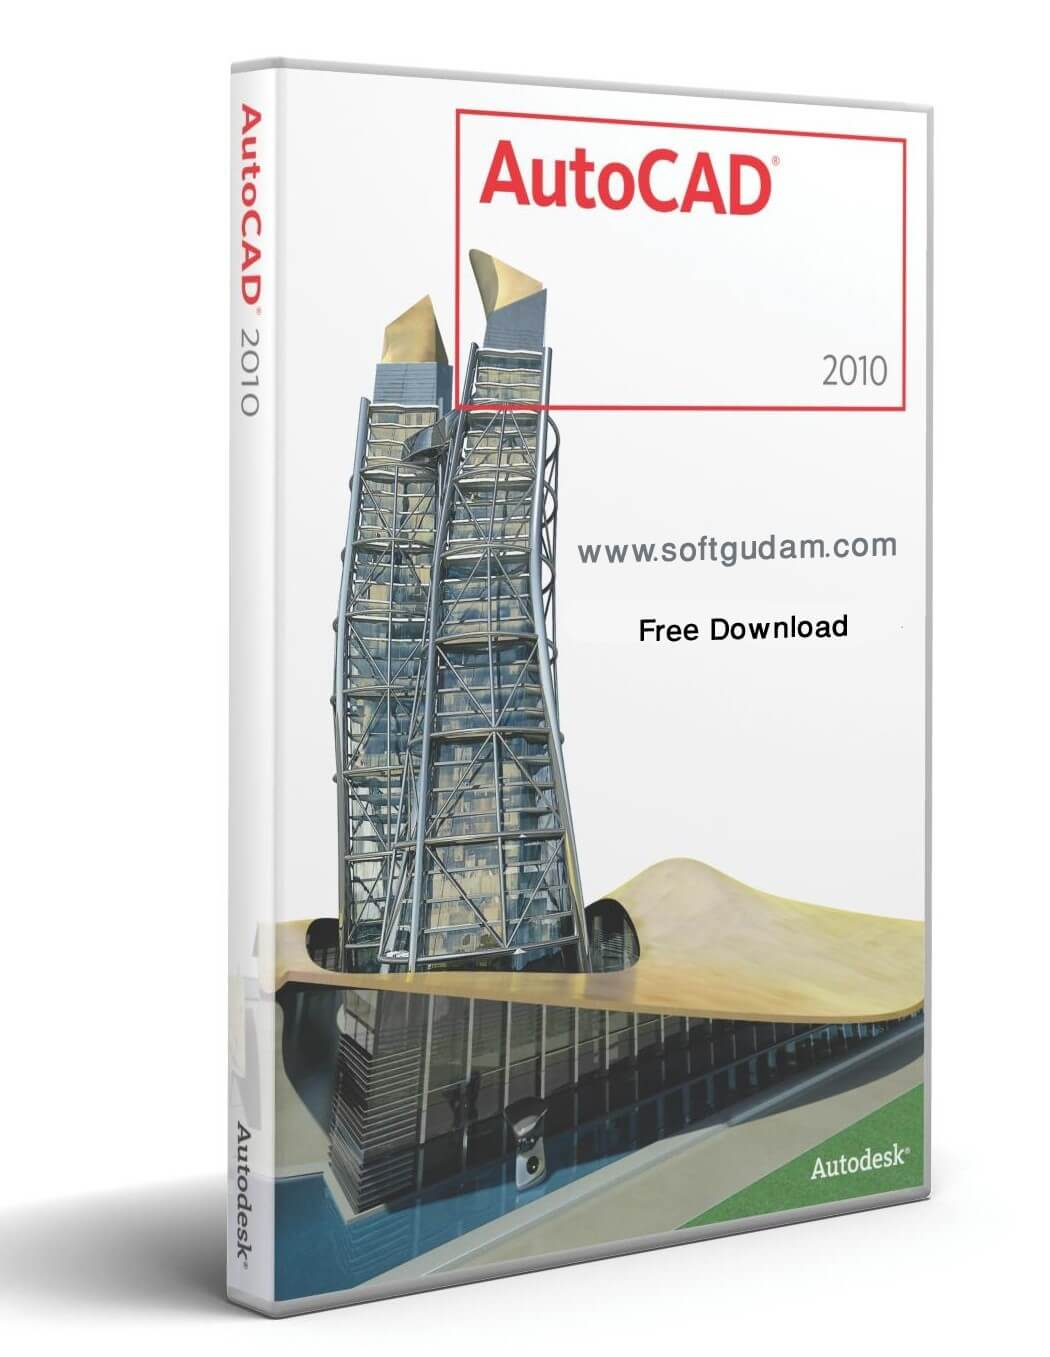 Autocad 2010 Full Version Soft Gudam